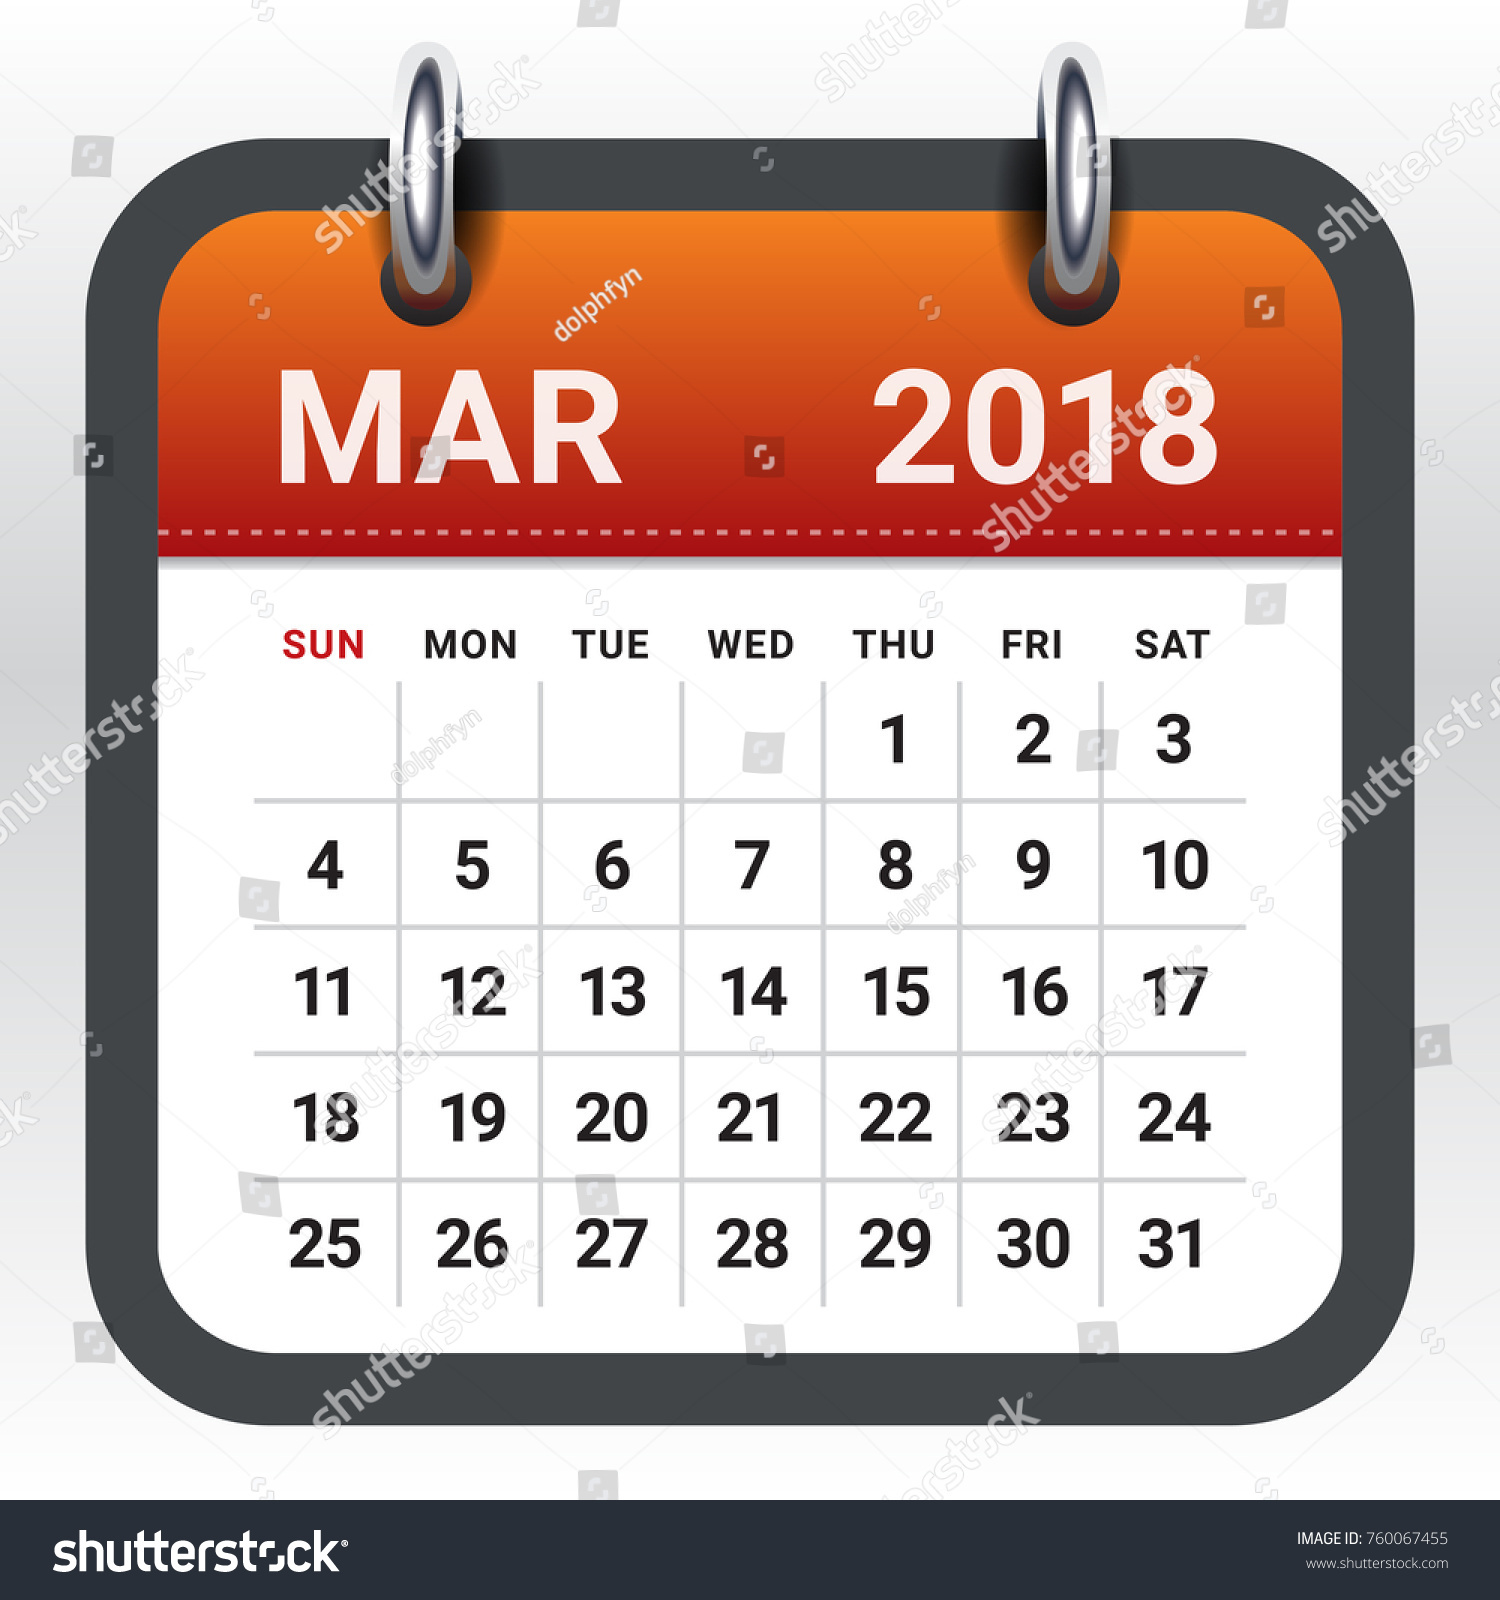 march 2018 calendar vector illustration simple and clean design